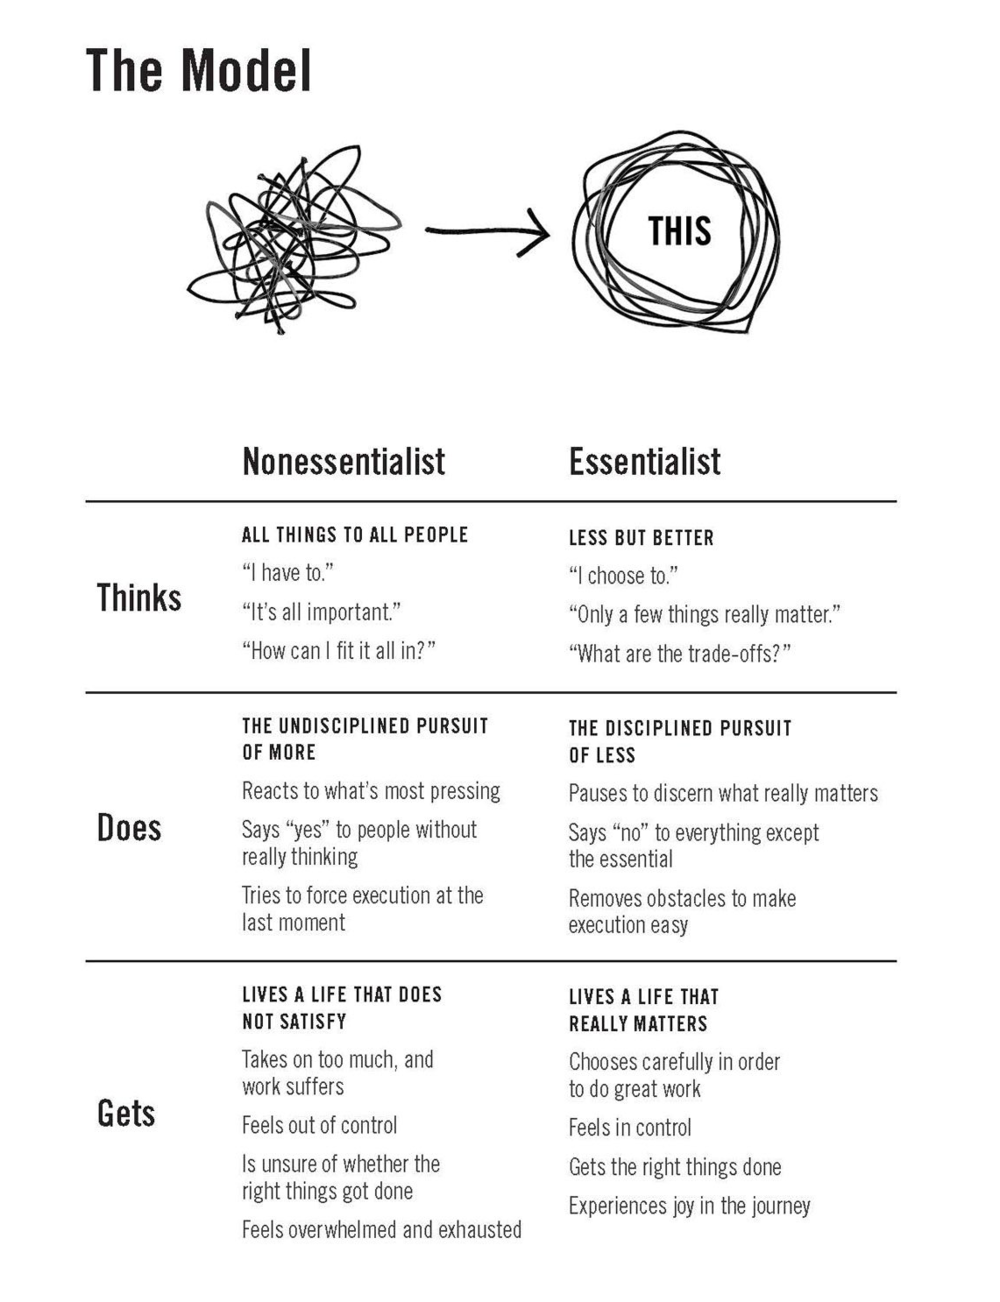 Excerpt from the book  Essentialism by George McKeown